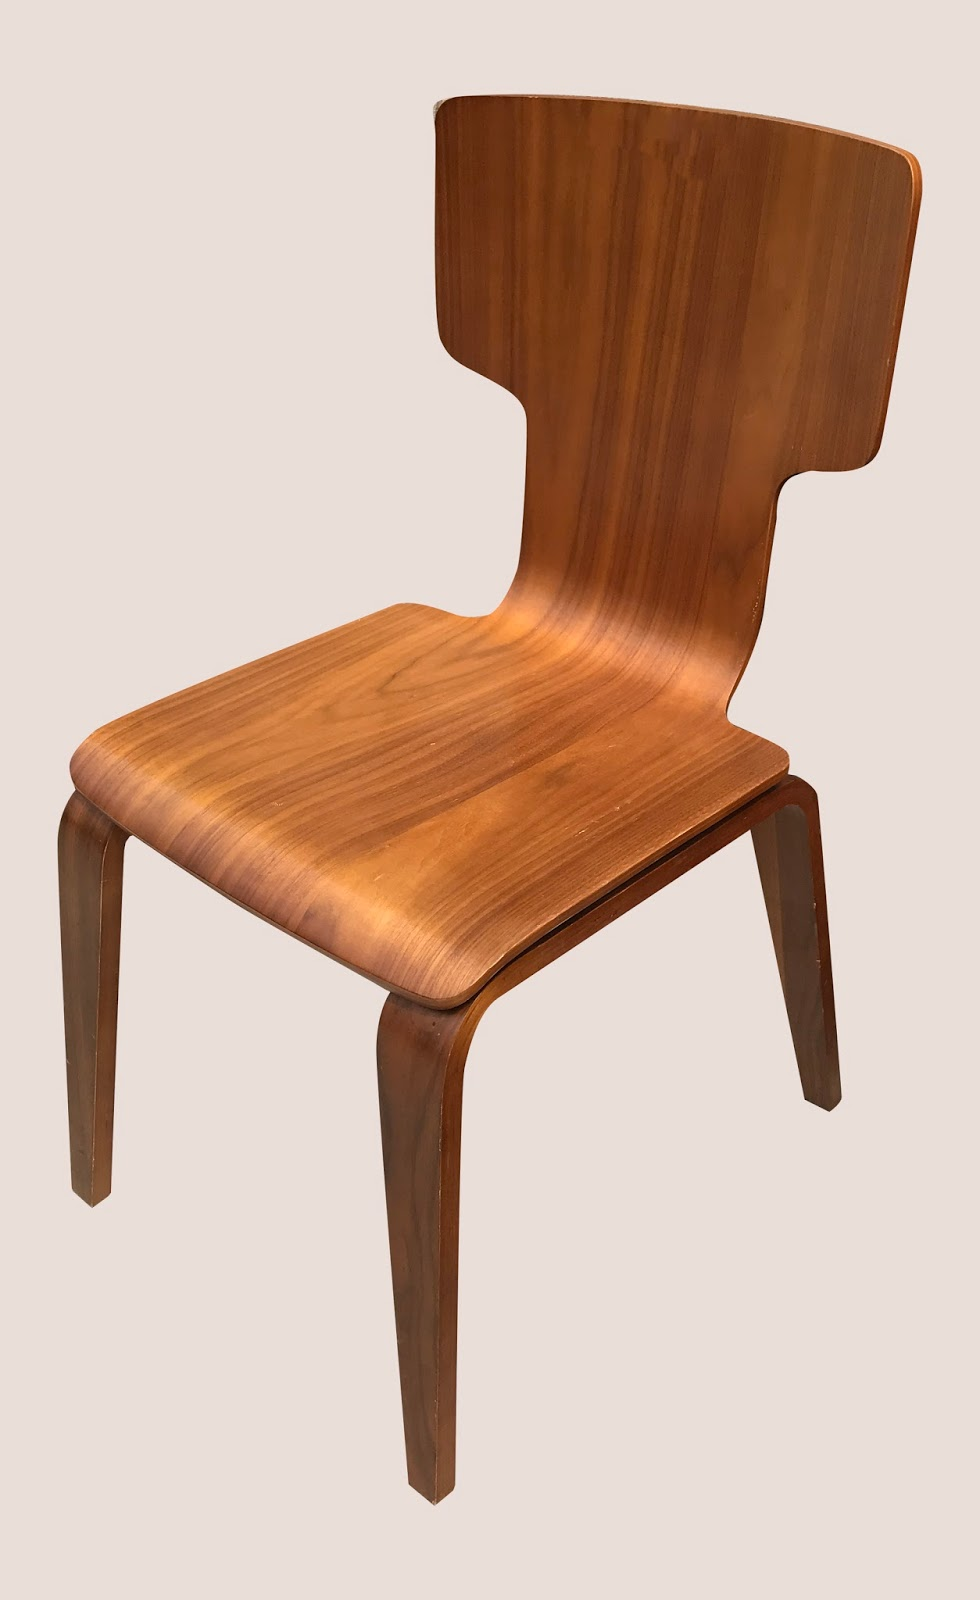 Uhuru Furniture Collectibles West Elm Chair 35 Sold